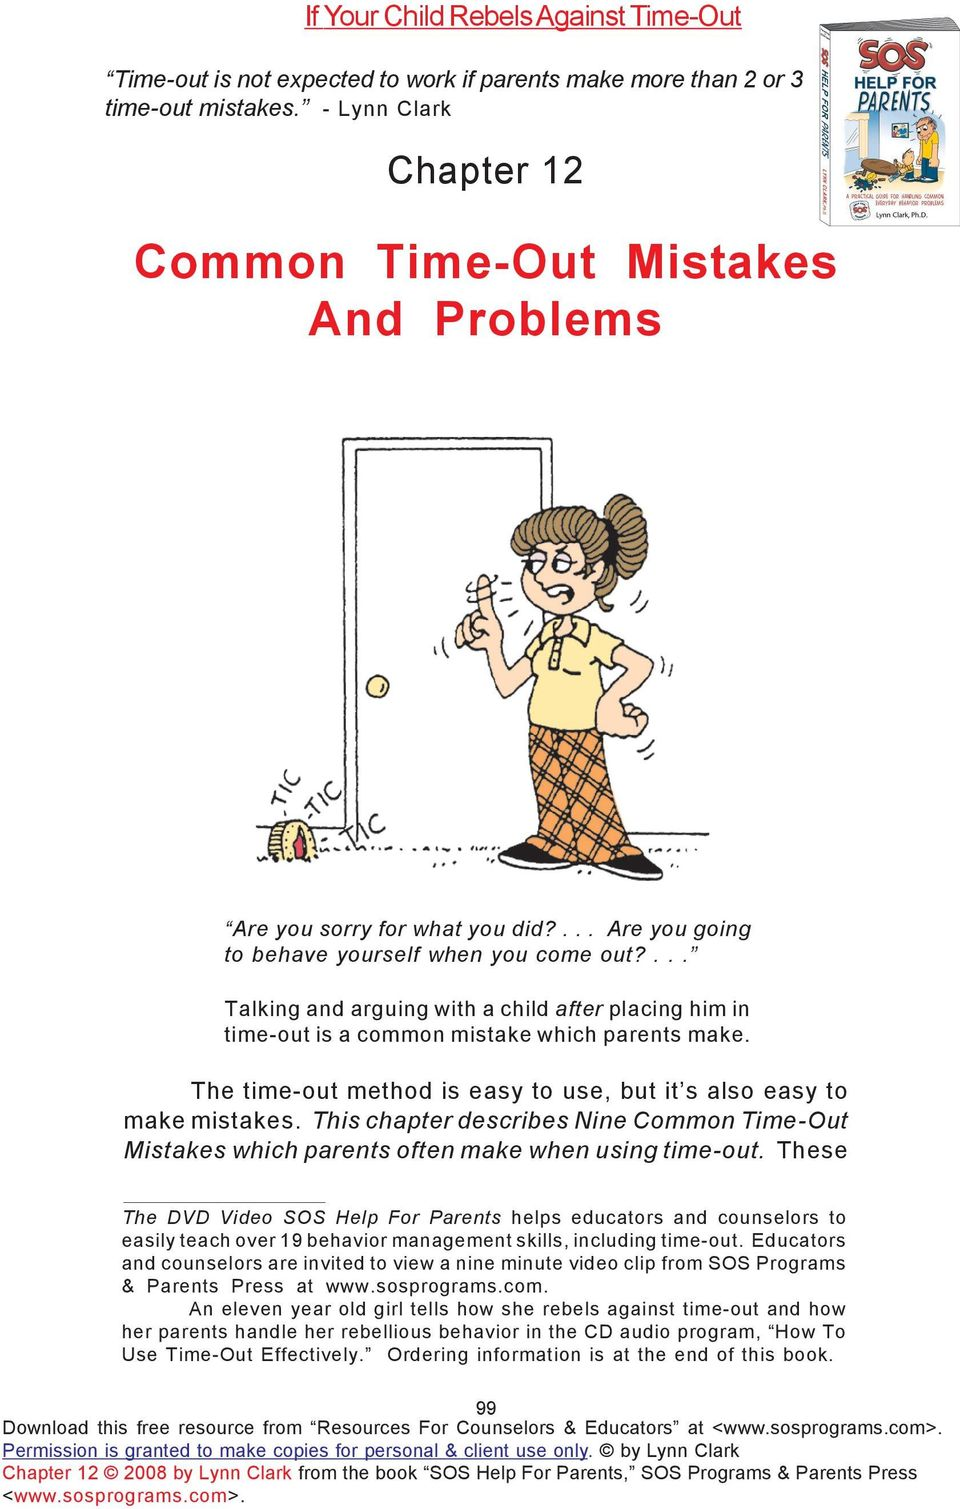 ... Talking and arguing with a child after placing him in time-out is a common mistake which parents make. The time-out method is easy to use, but it s also easy to make mistakes.